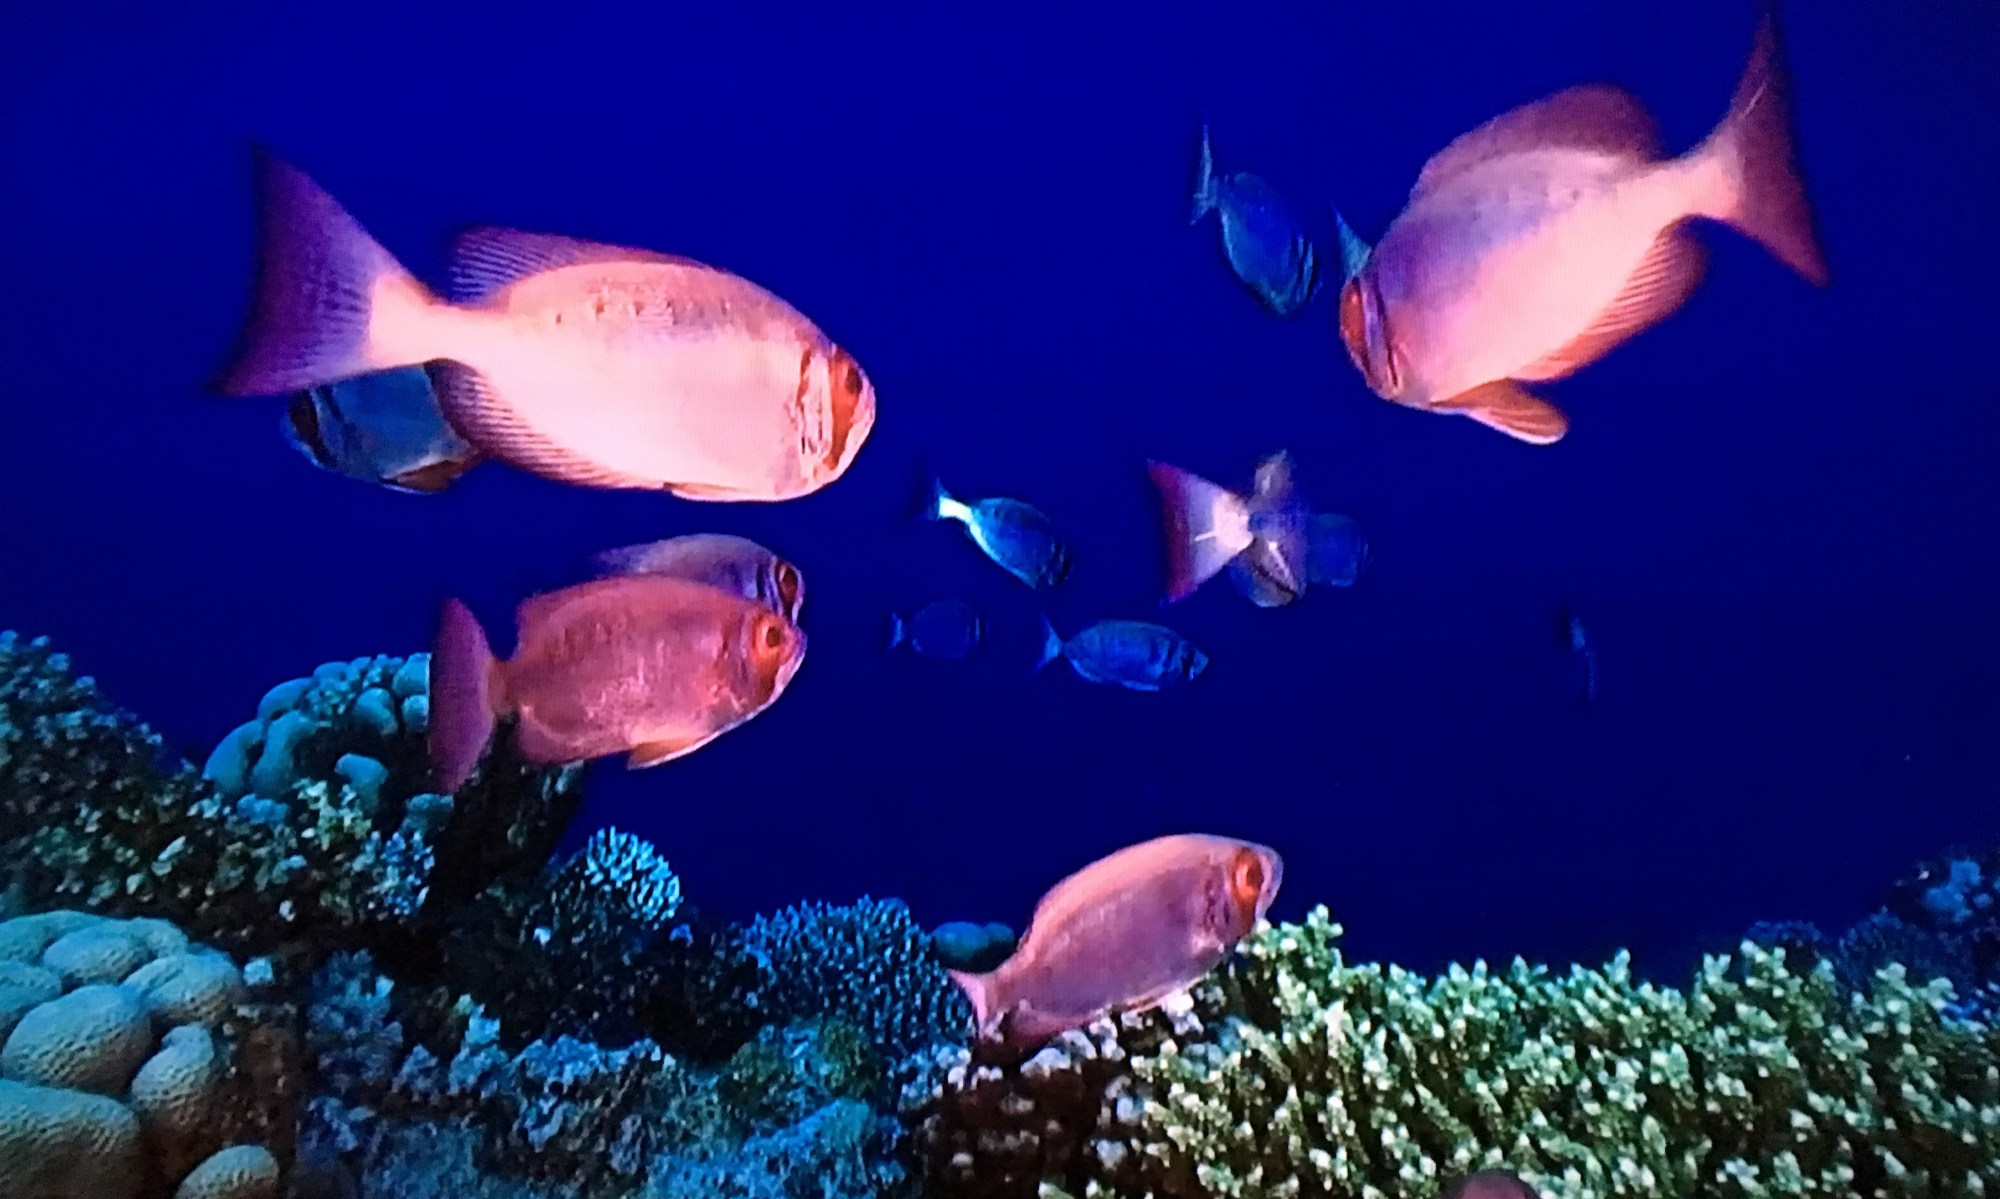 hight resolution of screen capture image of moontail bullseyes swimming in a coral reef via at t u